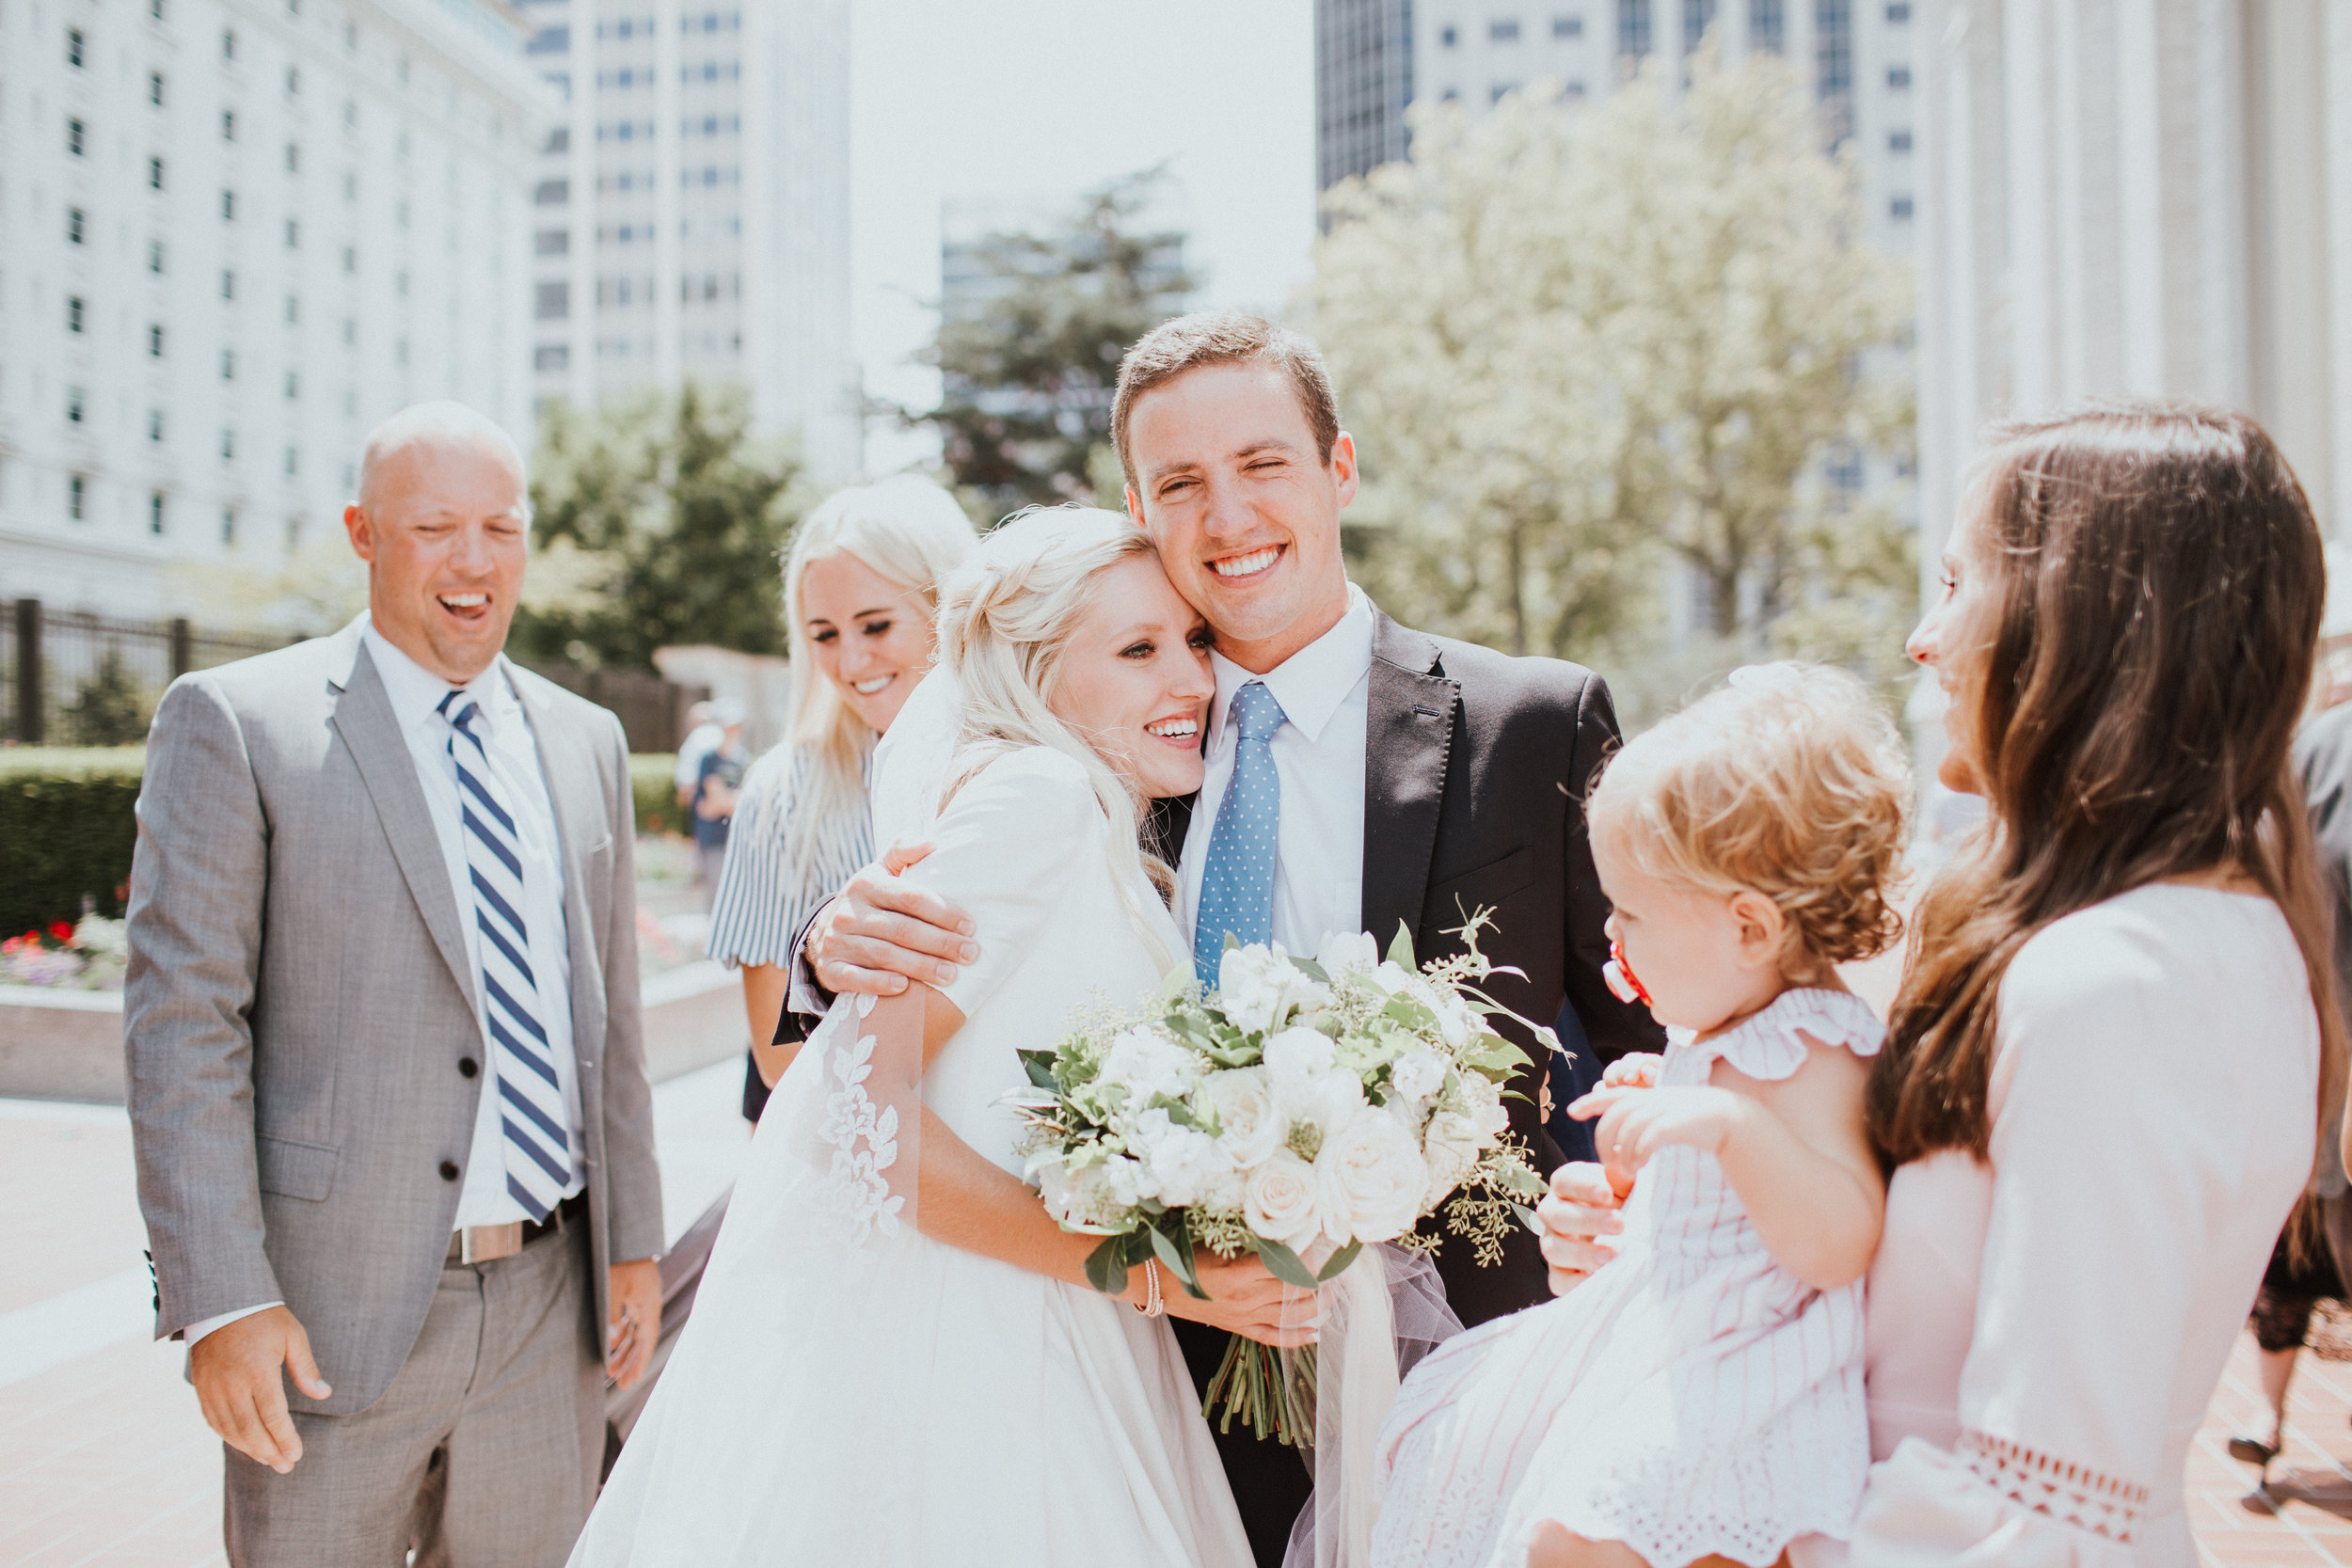 Natalie+Tanner-WeddingDay-11.jpg